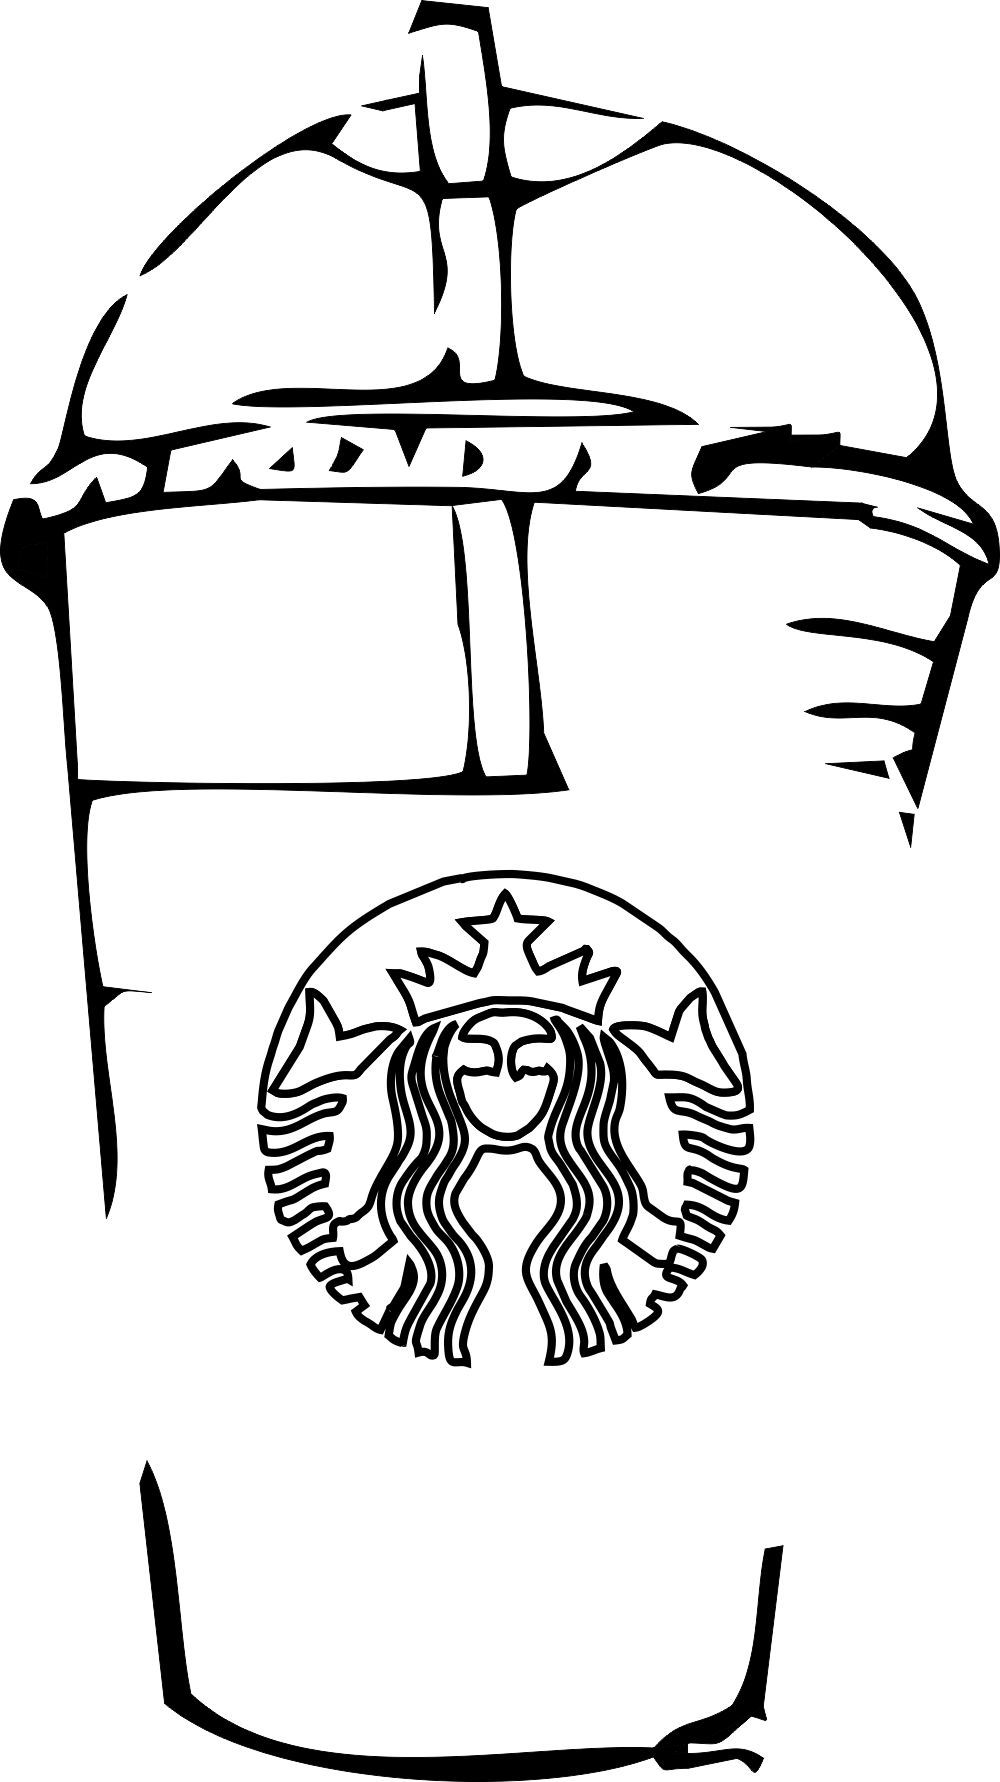 Starbucks Coloring Pages To Print Coloring Pages To Print